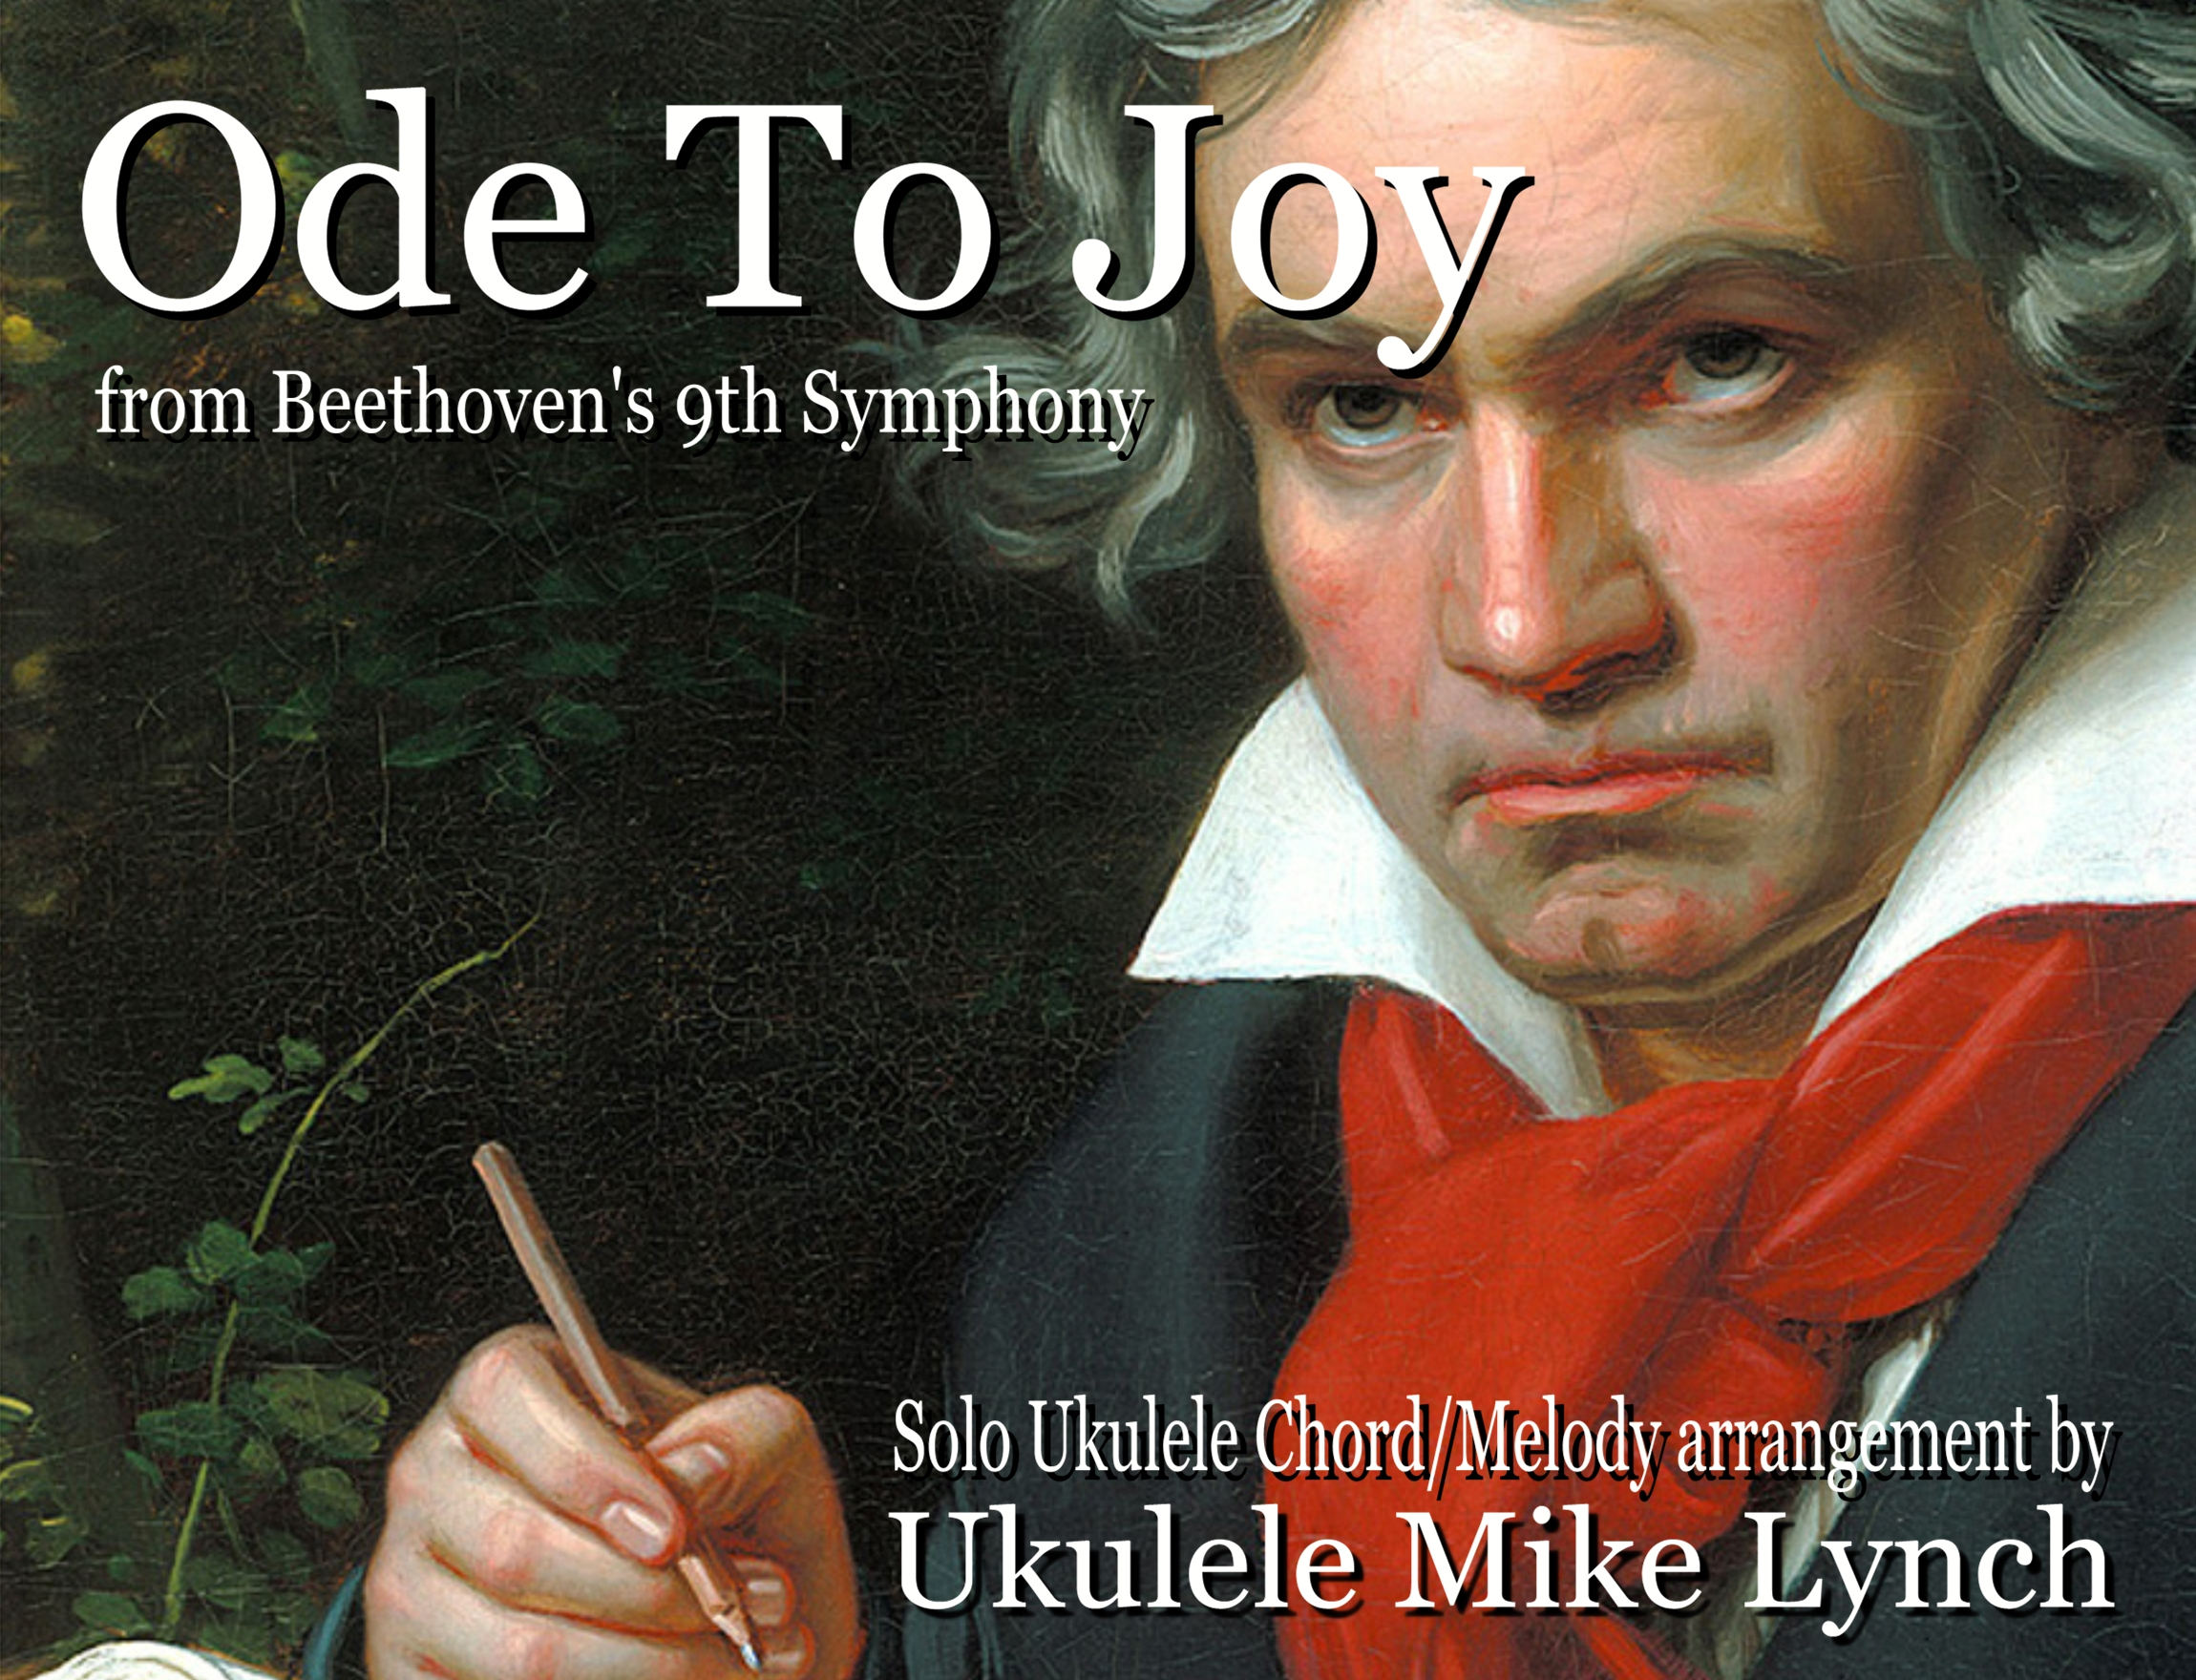 Announcing Ode To Joy By Ludwig Van Beethoven Now In A